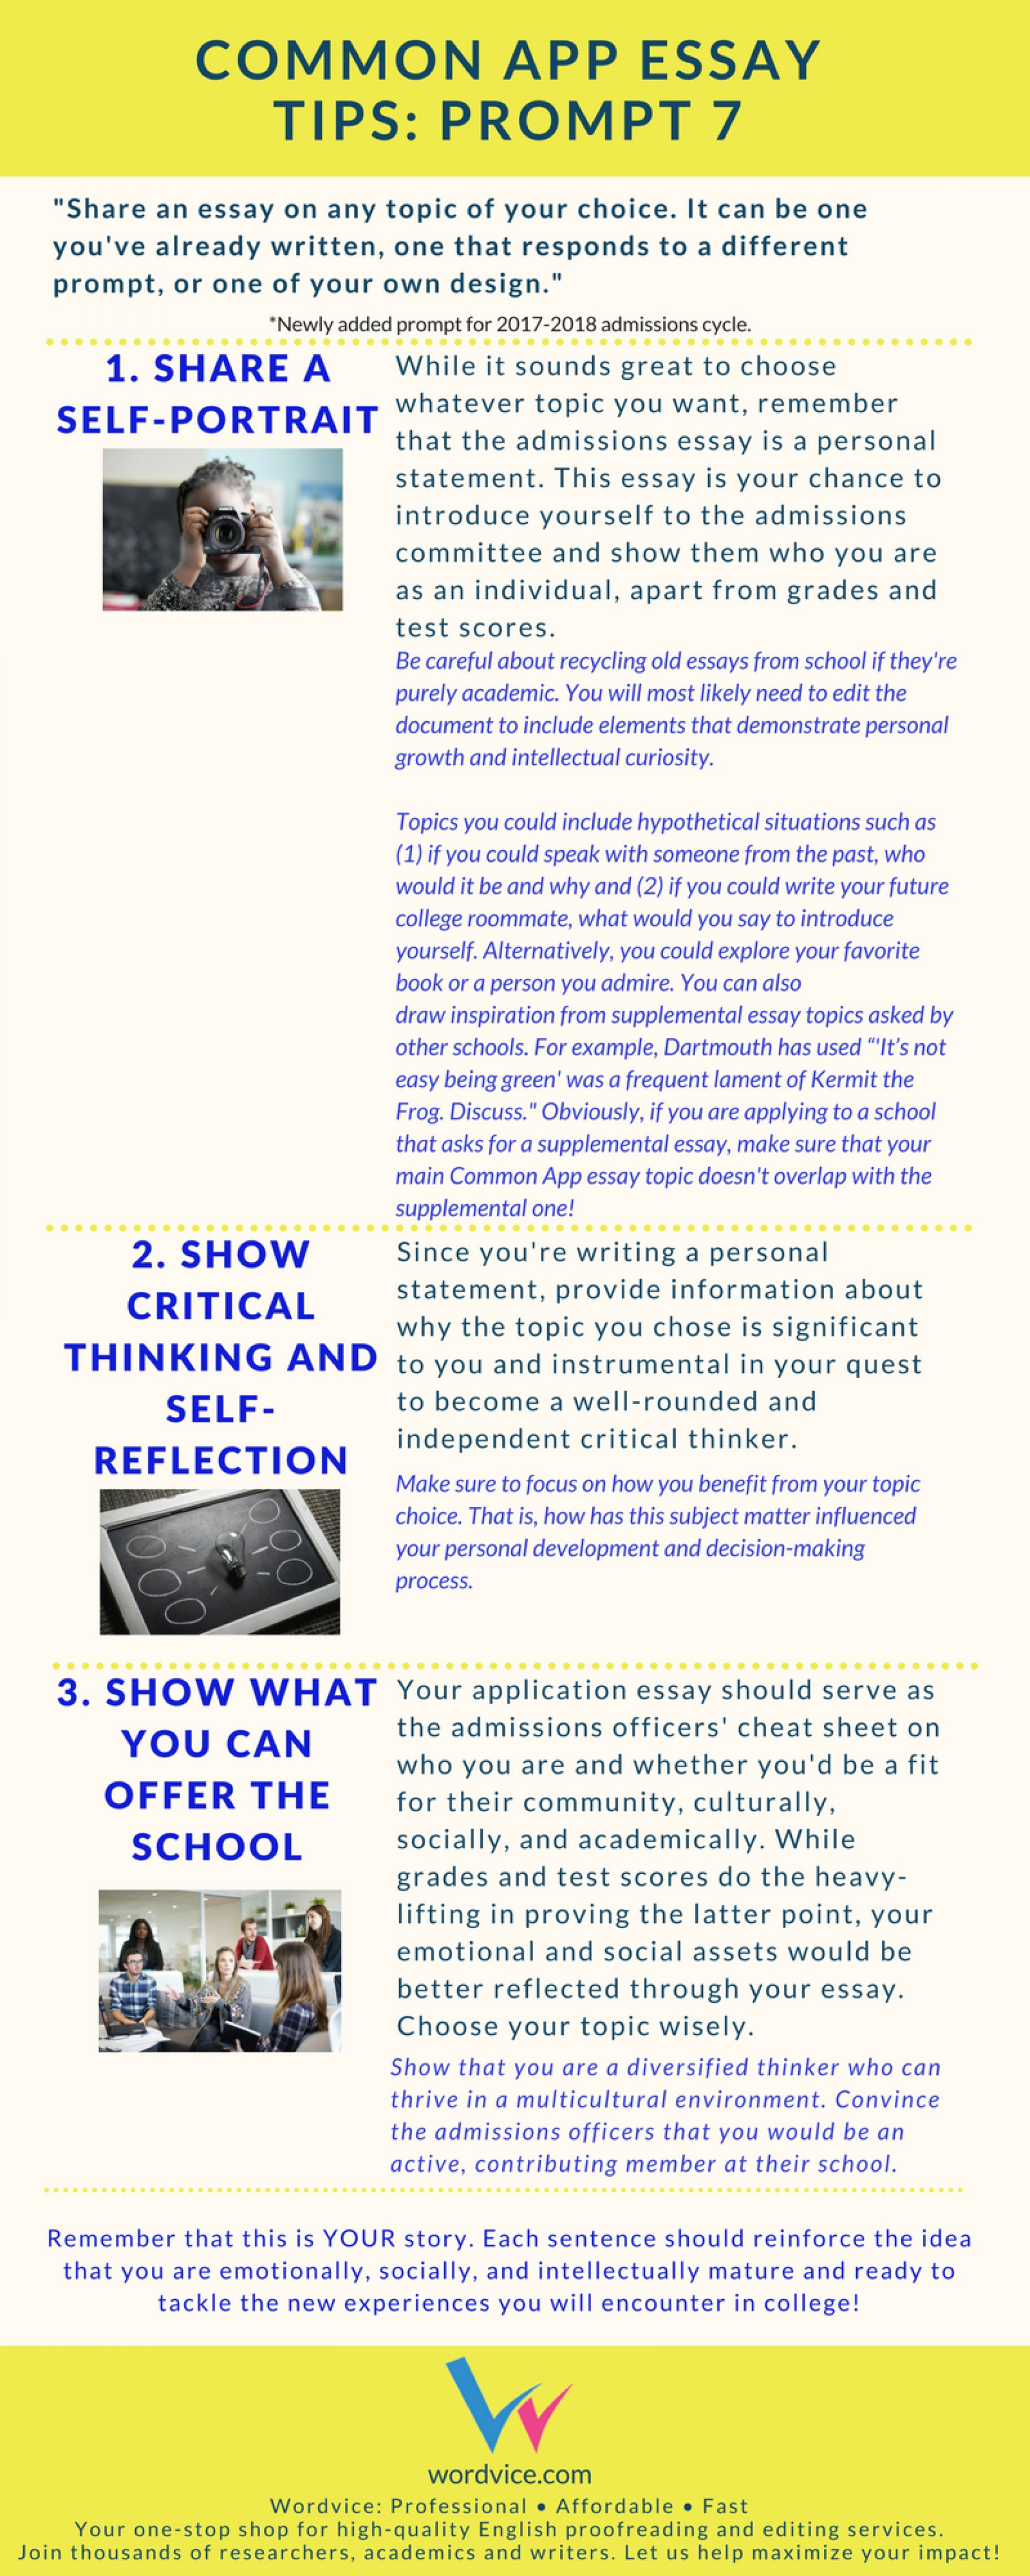 006 Common Application Essay Prompts App Brainstormprompt Imposing Word Limit 2020 1920